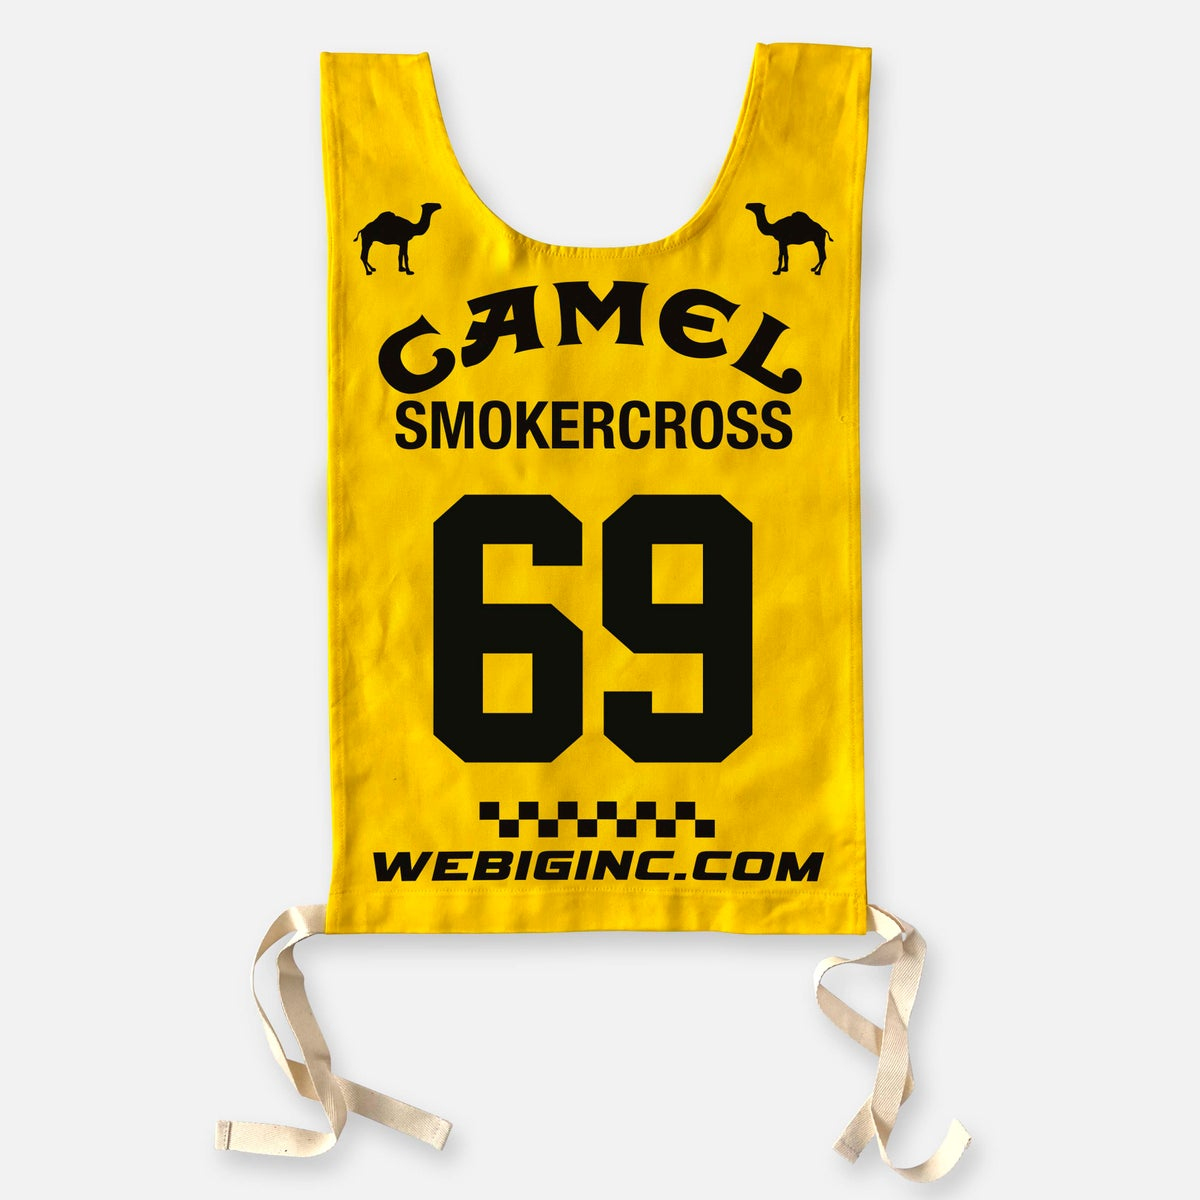 Image of CAMEL SMOKERCROSS BIB / WITH NUMBER